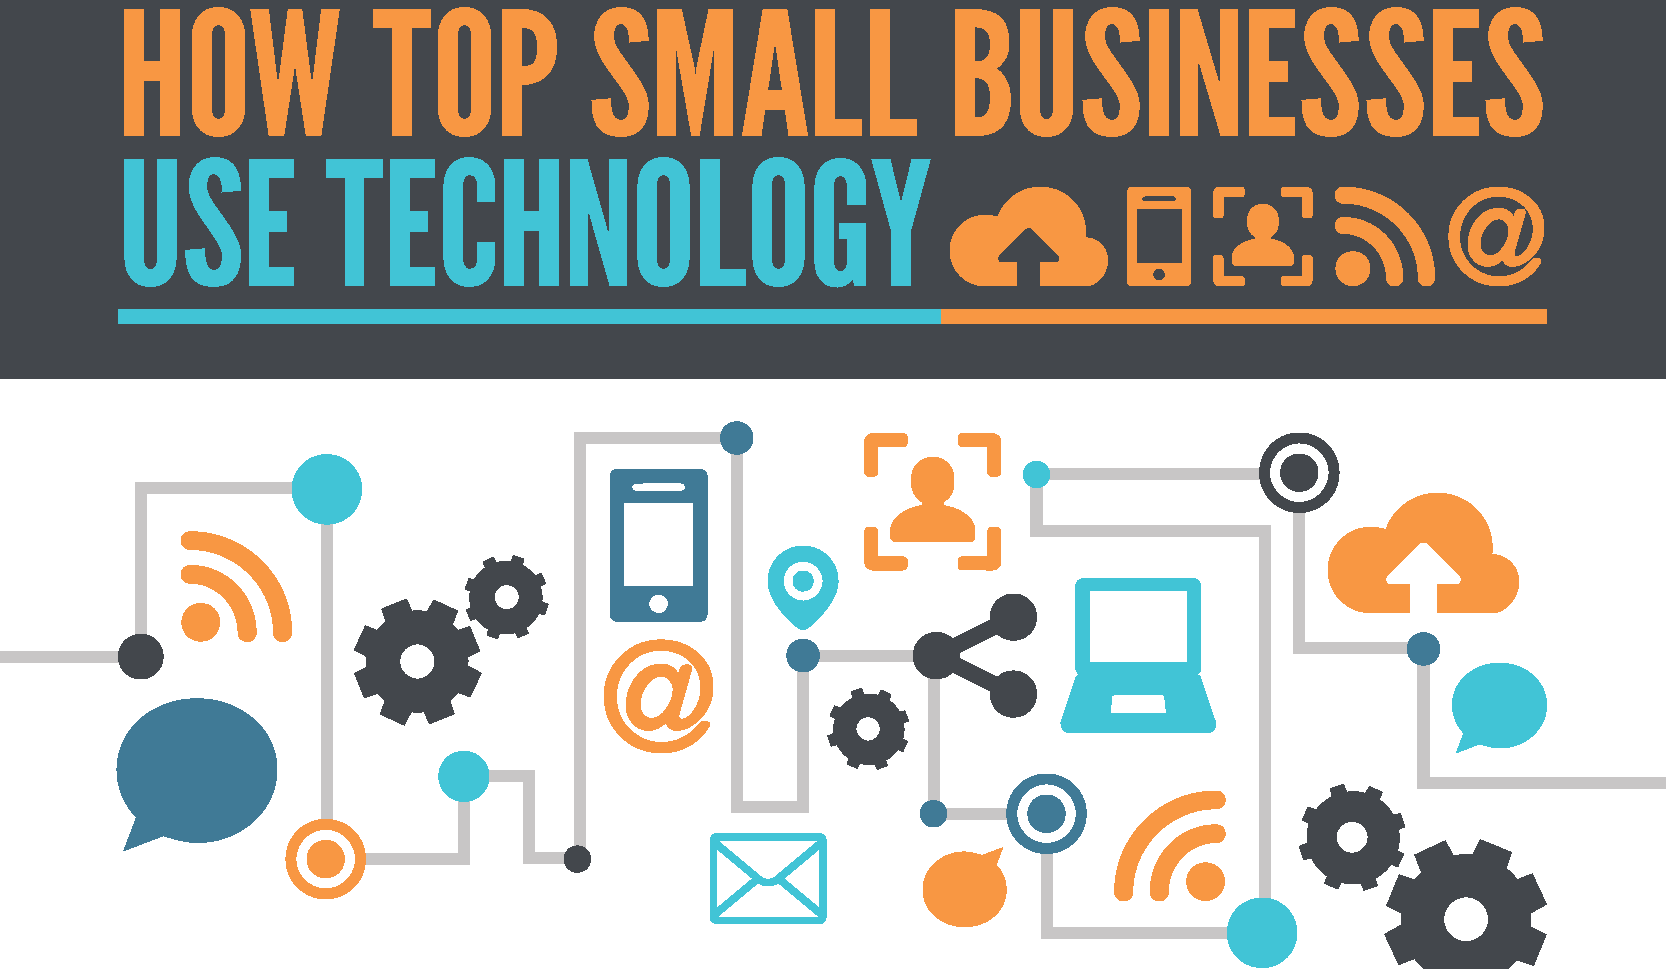 How Top Small Businesses Use Technology